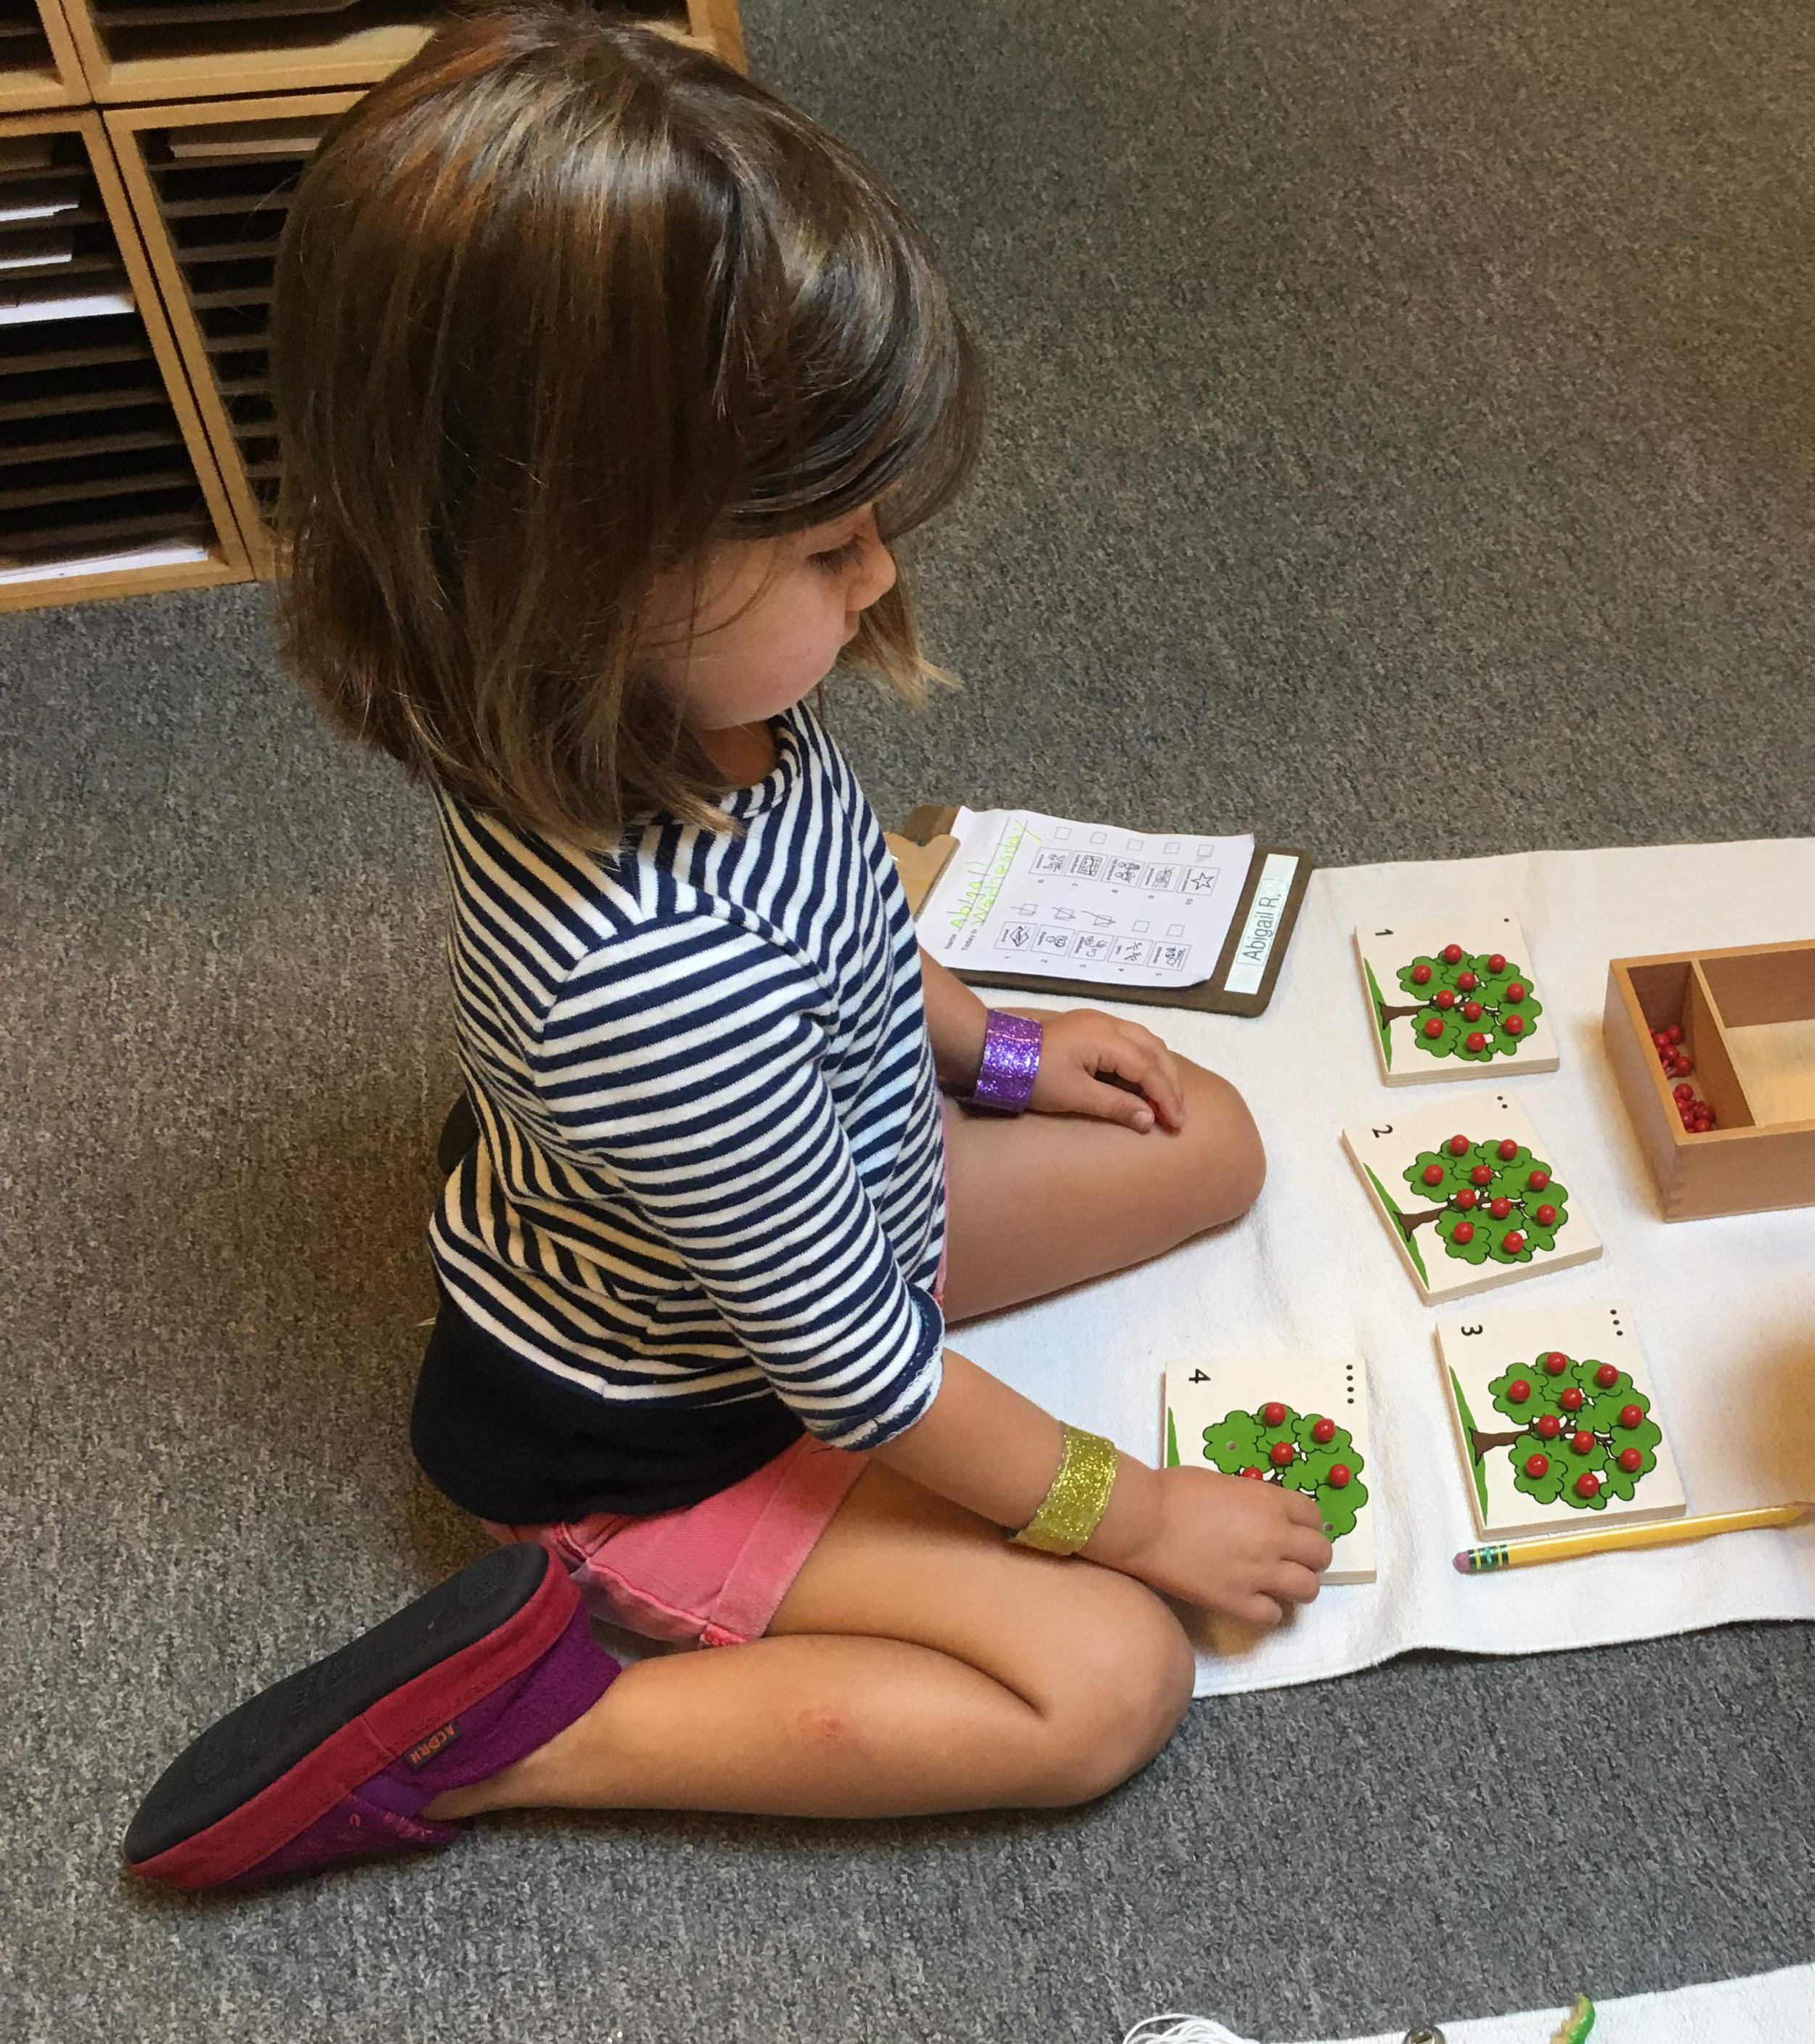 Specialized MontessoriLearning Tools - Maria Montessori developed many of the materials our children work with to encourage and facilitate focus and confidence.